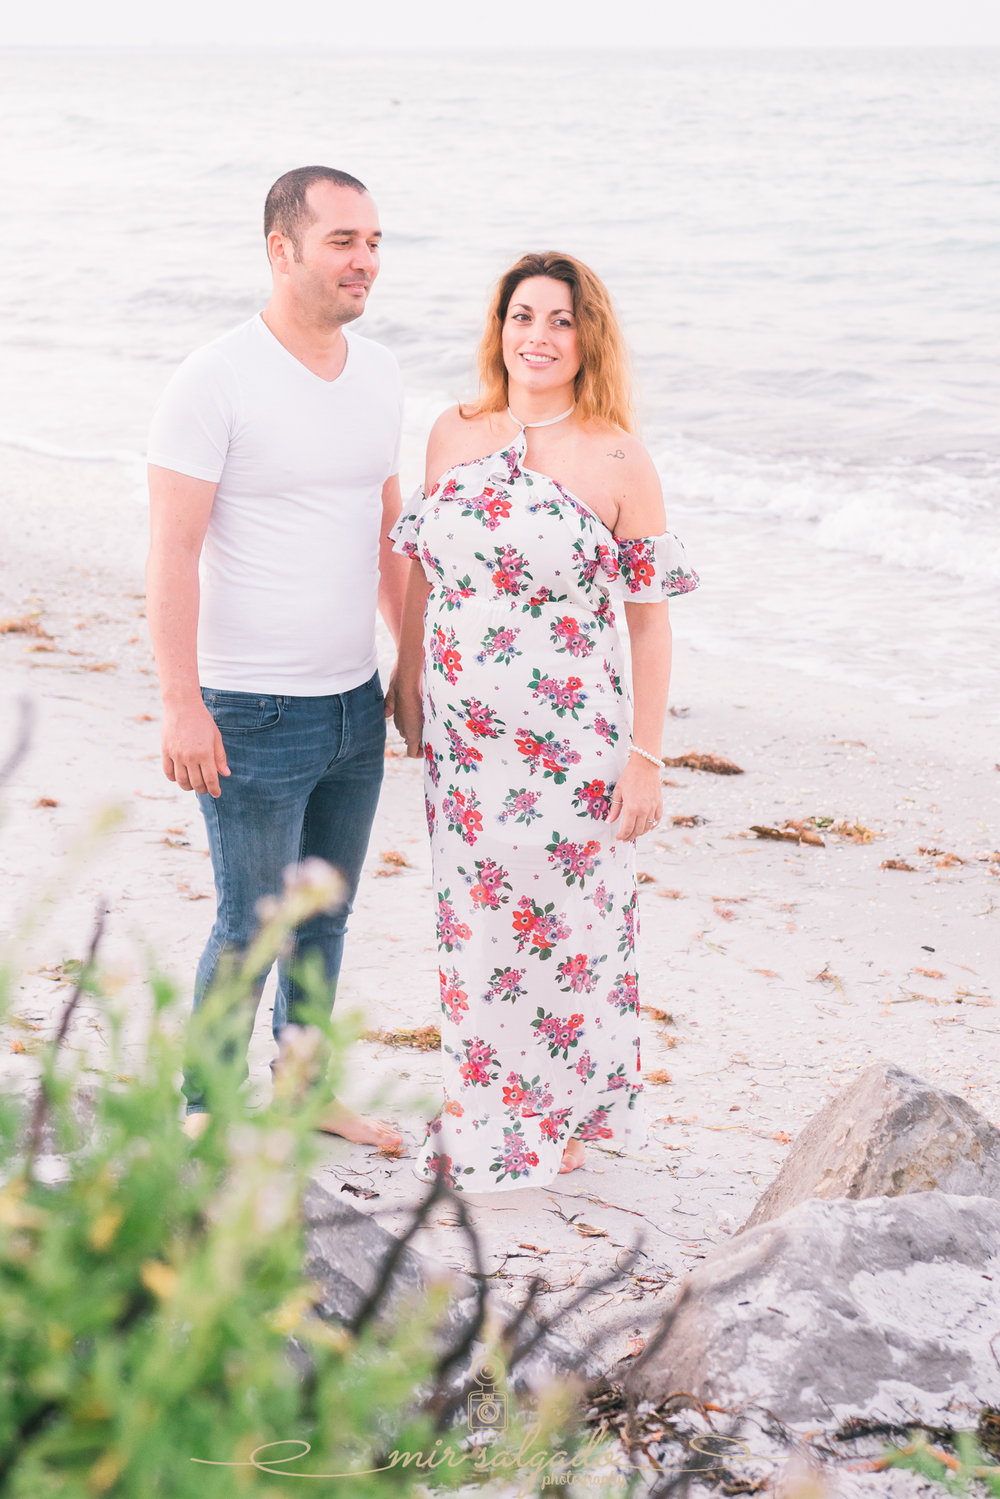 St.Pete-sunrise-maternity-photo, beach-maternity-session